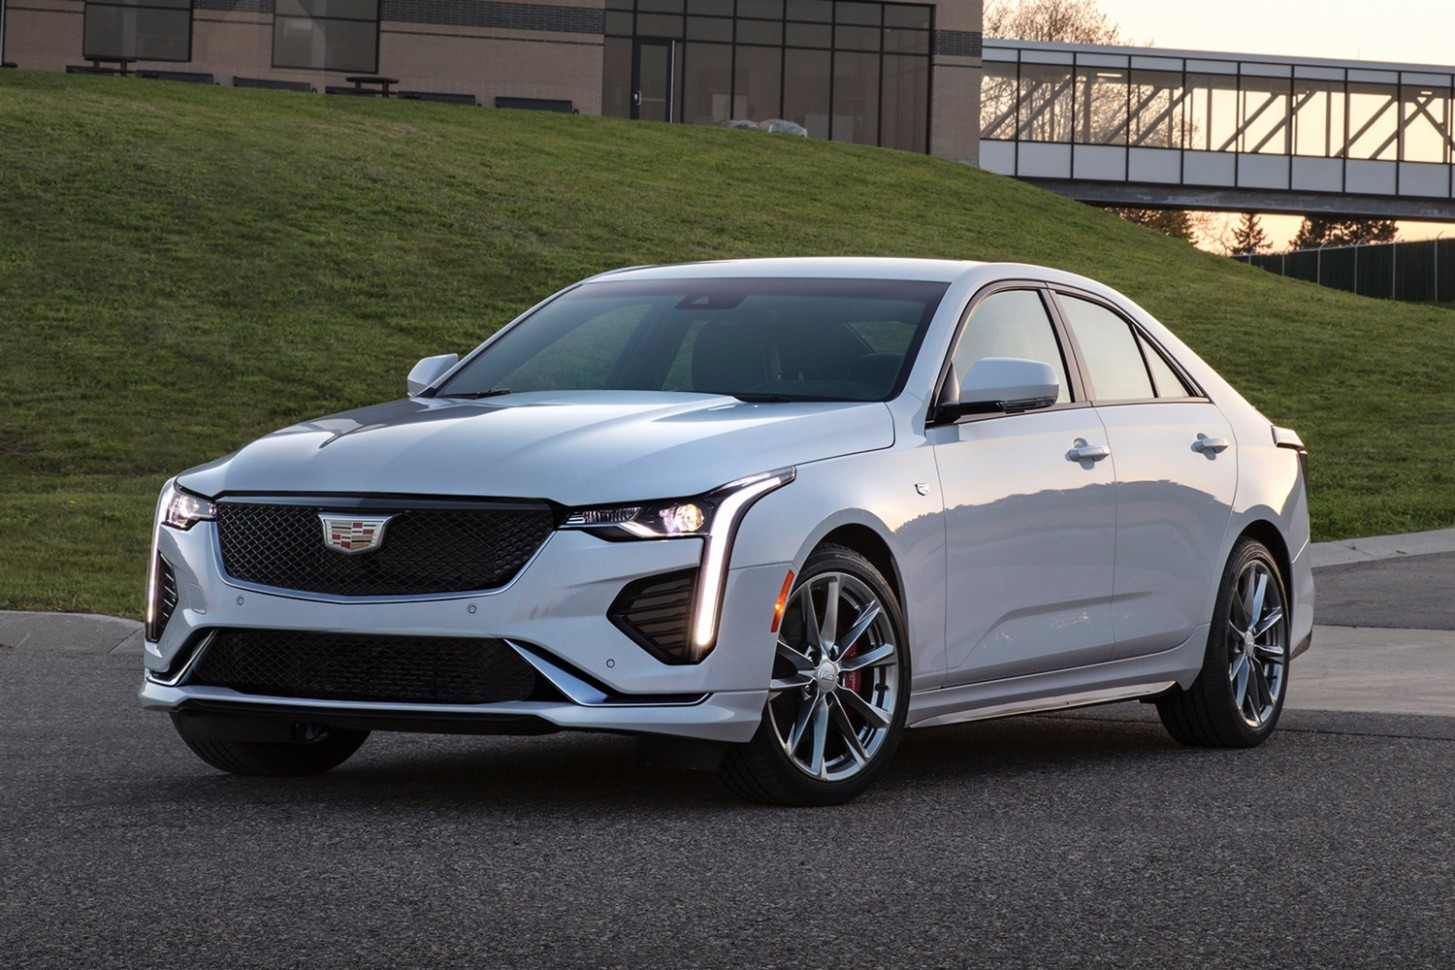 4 Cadillac CT4 Info, Availability, Specs, Wiki GM Authority - Cadillac Ct4 2021